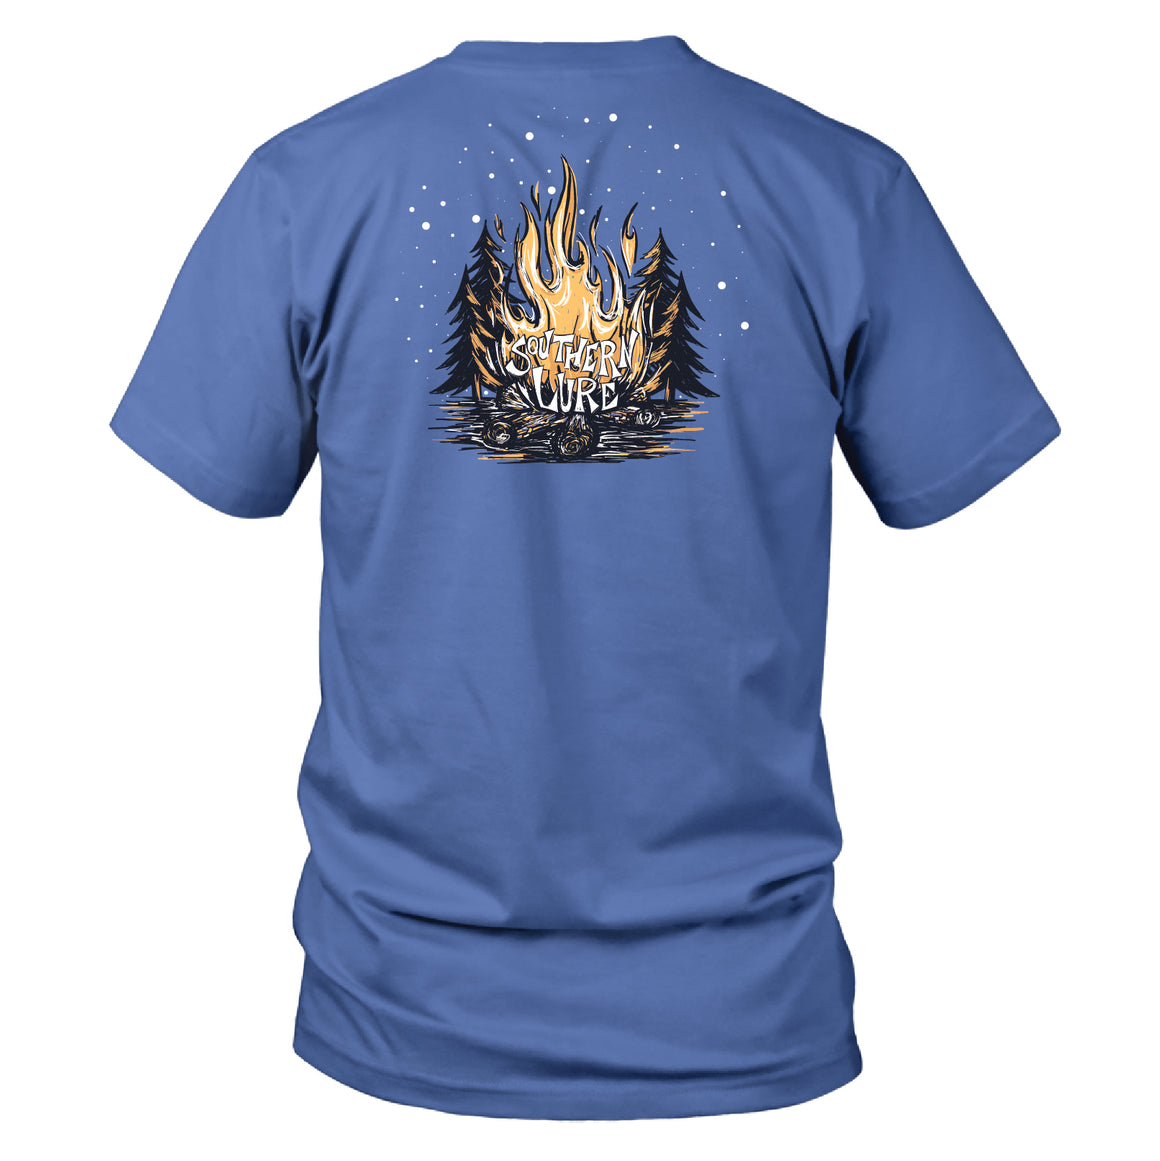 Youth & Toddler - Short Sleeve Tee - Bonfire - Dusk